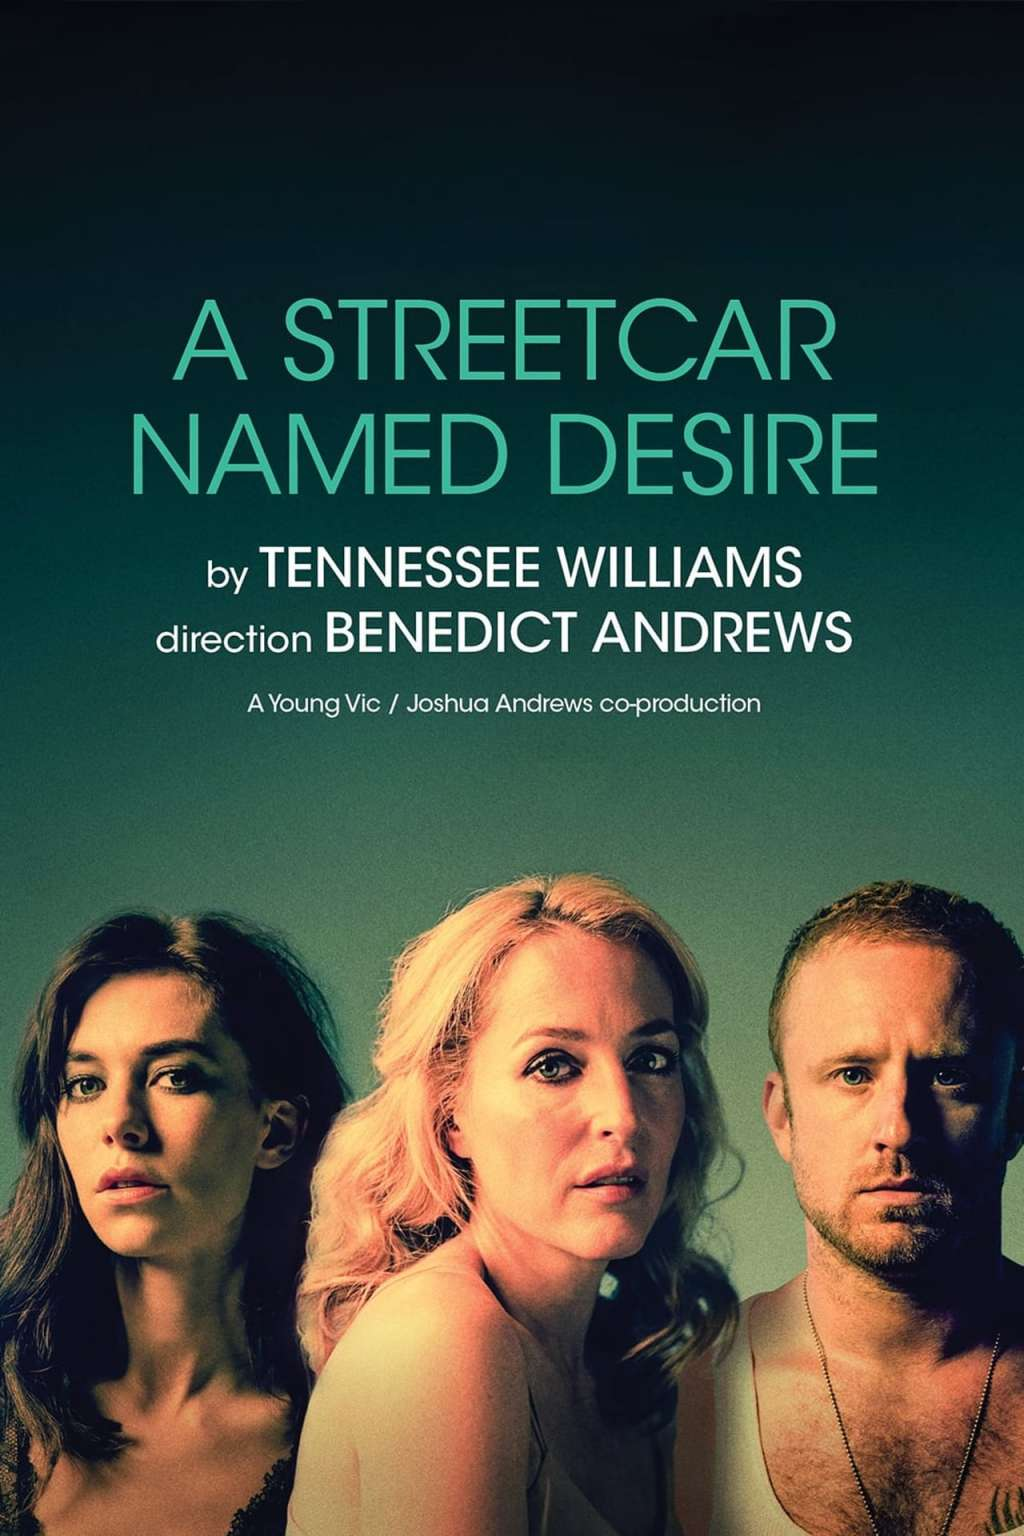 National Theatre Live: A Streetcar Named Desire kapak